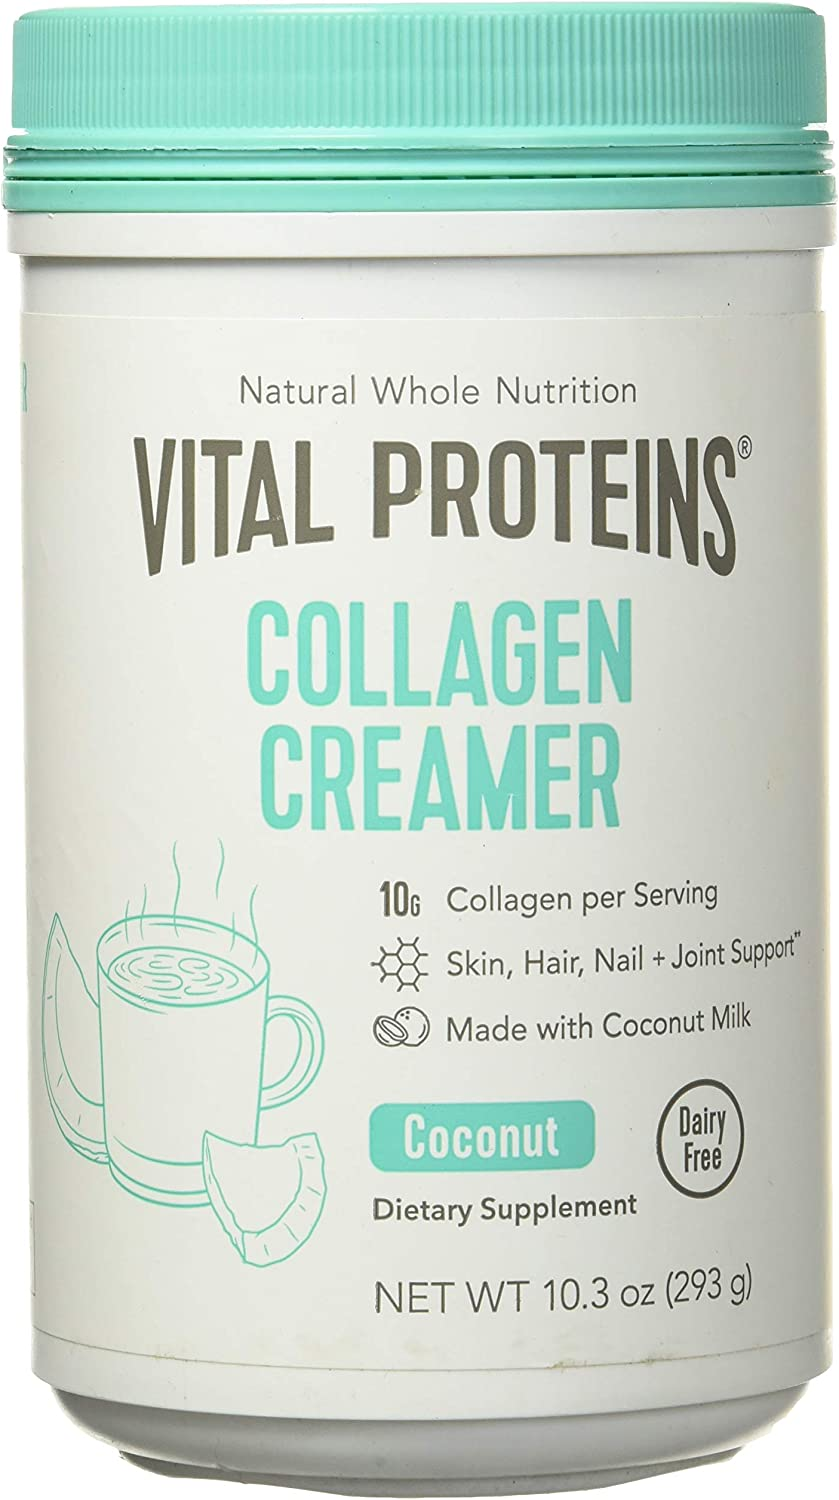 Amazon Com Vital Proteins Collagen Creamer Coconut 10oz Dairy Free Paleo And Keto Friendly Health Personal Care,Different Types Of Flower Arrangement Pdf